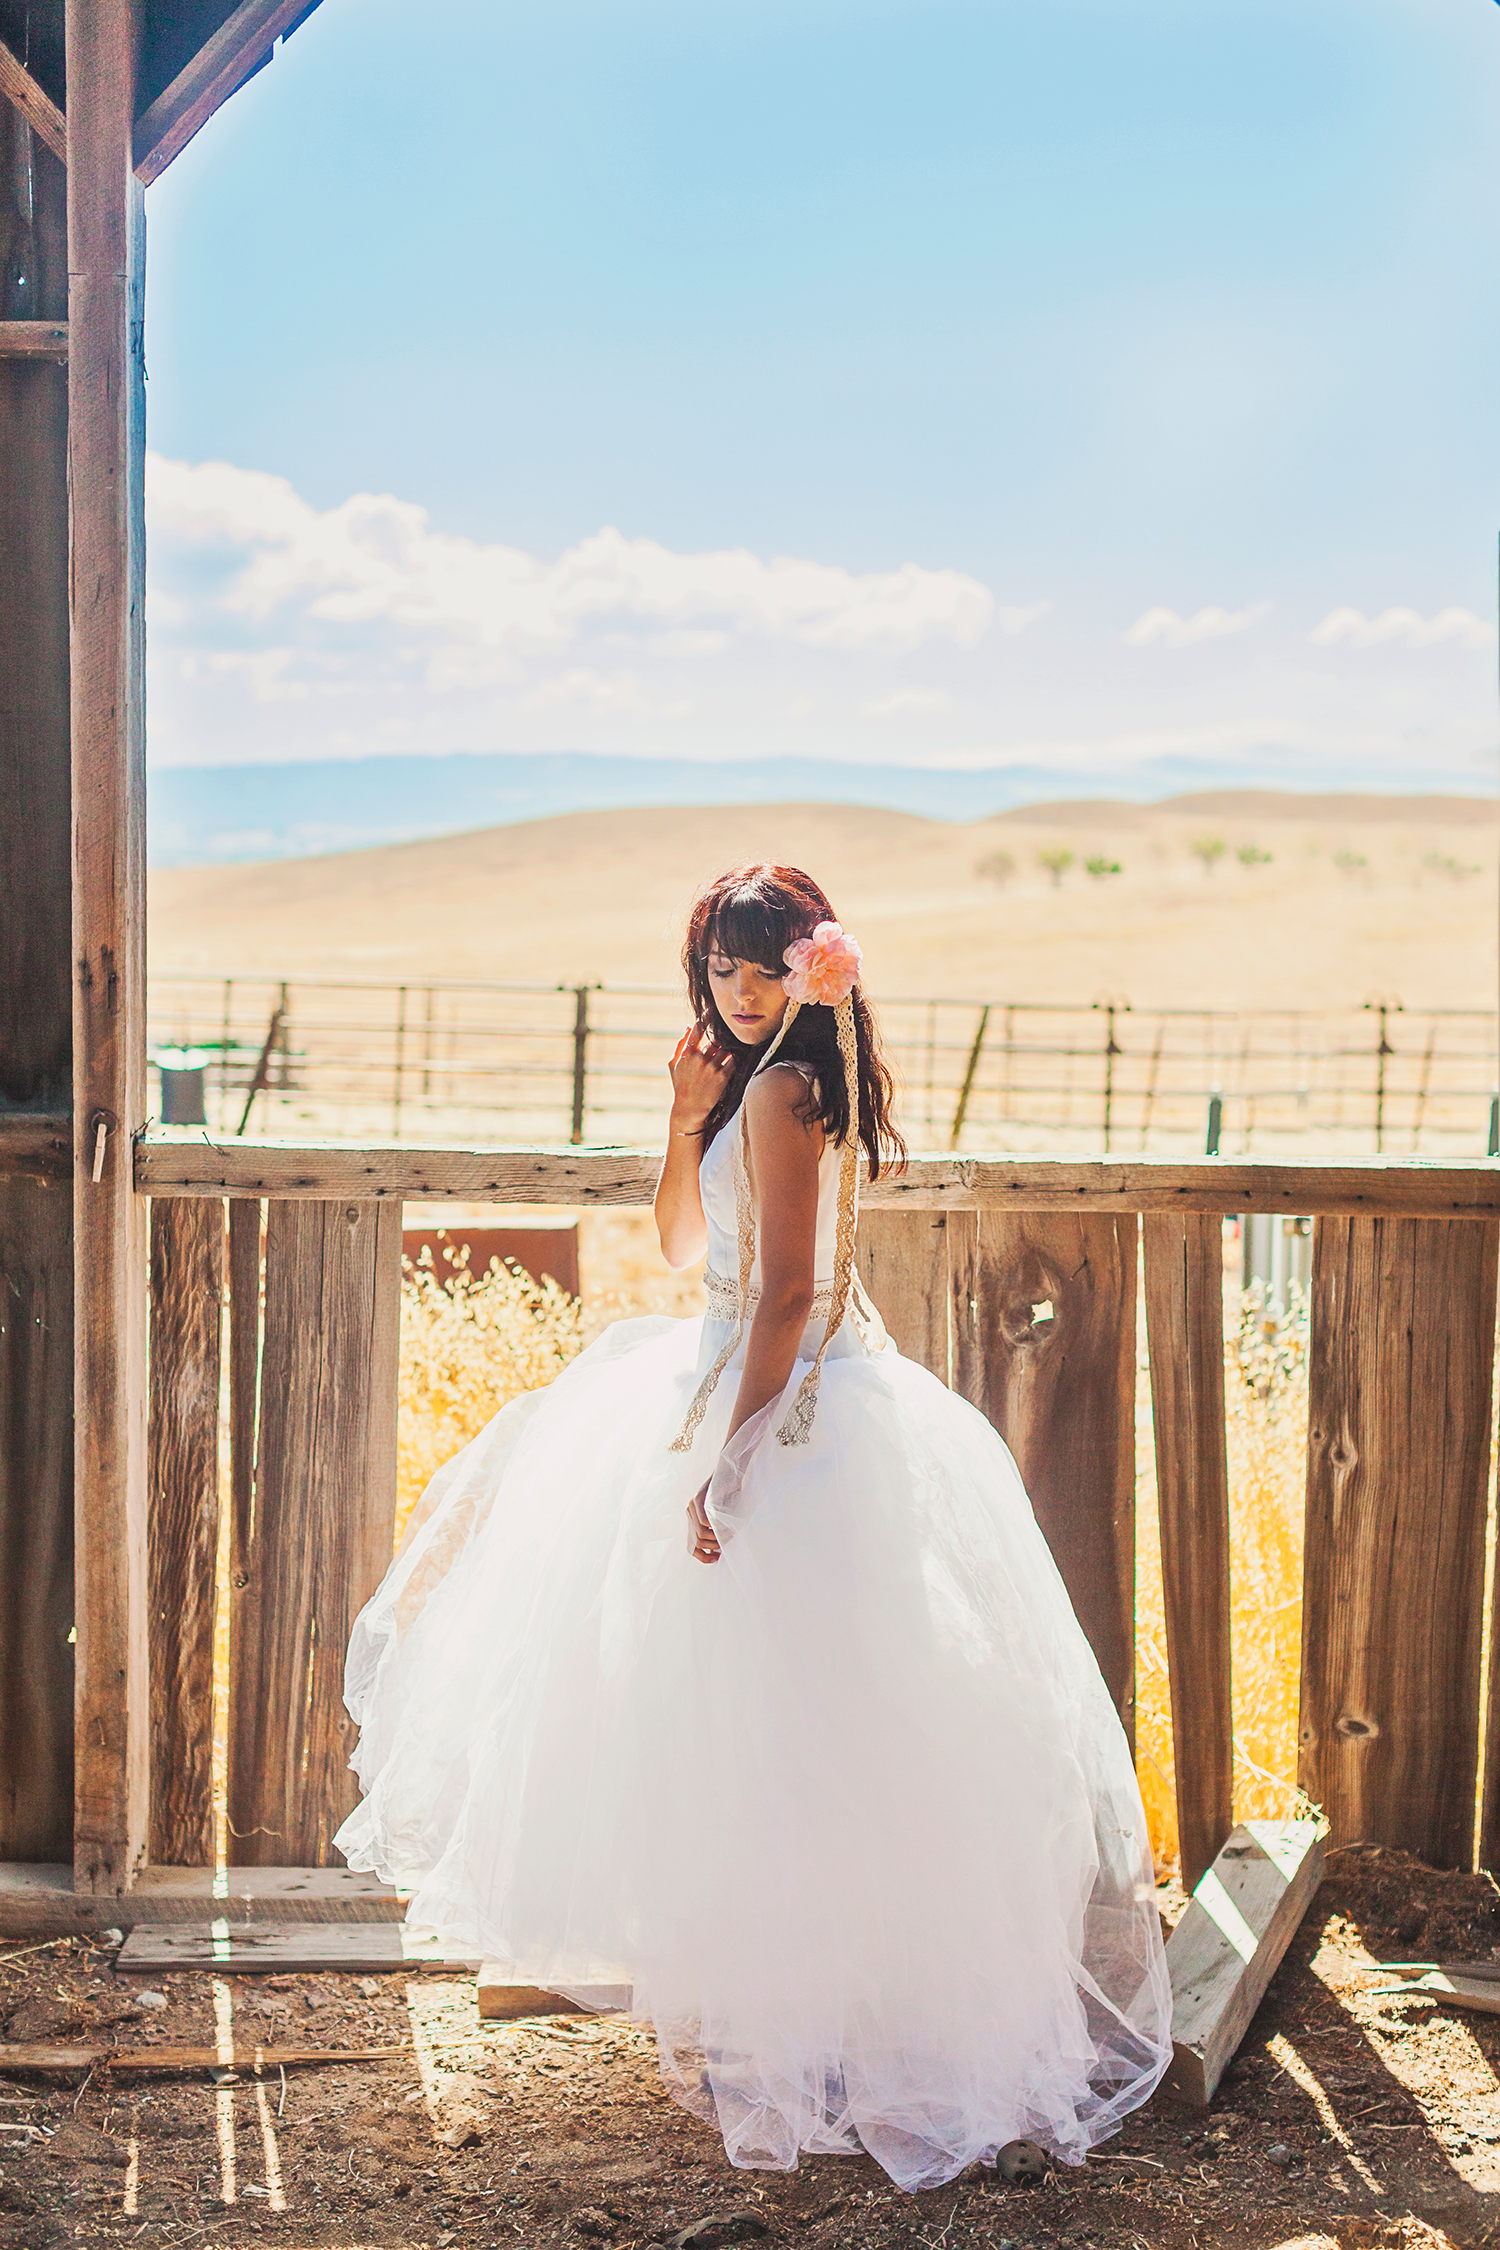 Dena_Rooney_Wedding_Photographer_Ranch_003.jpg